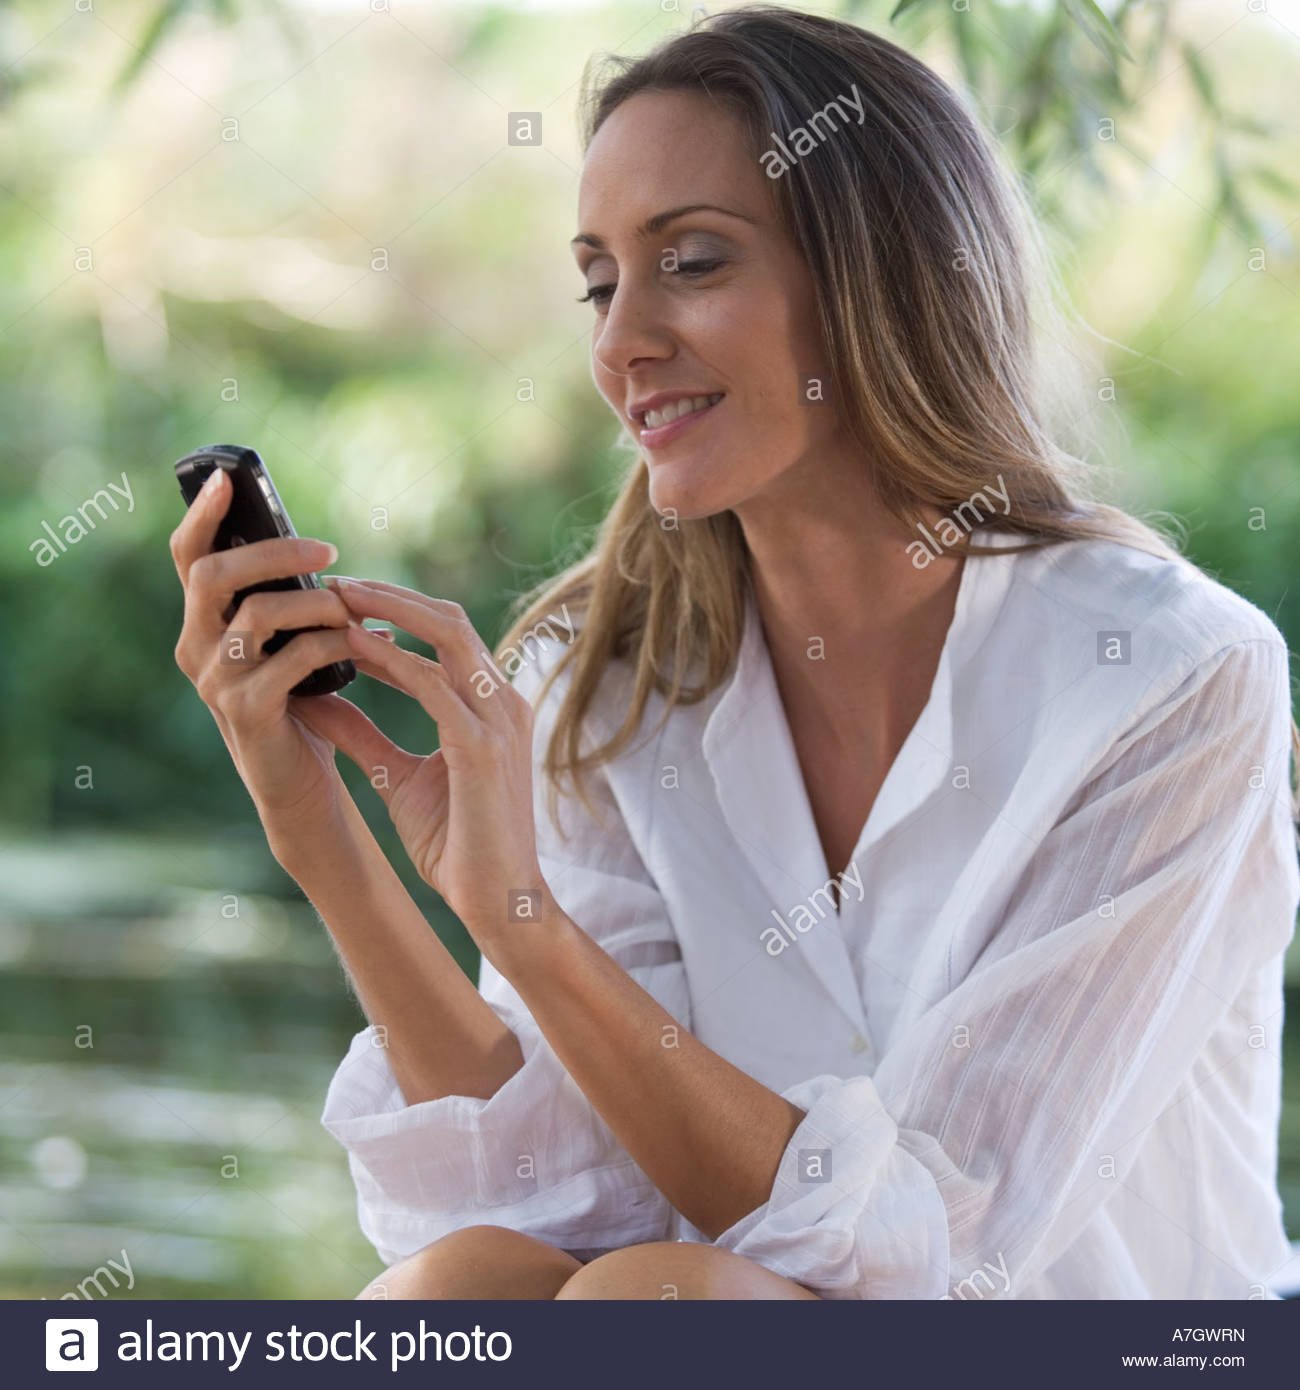 young-woman-using-a-mobile-phone-A7GWRN.